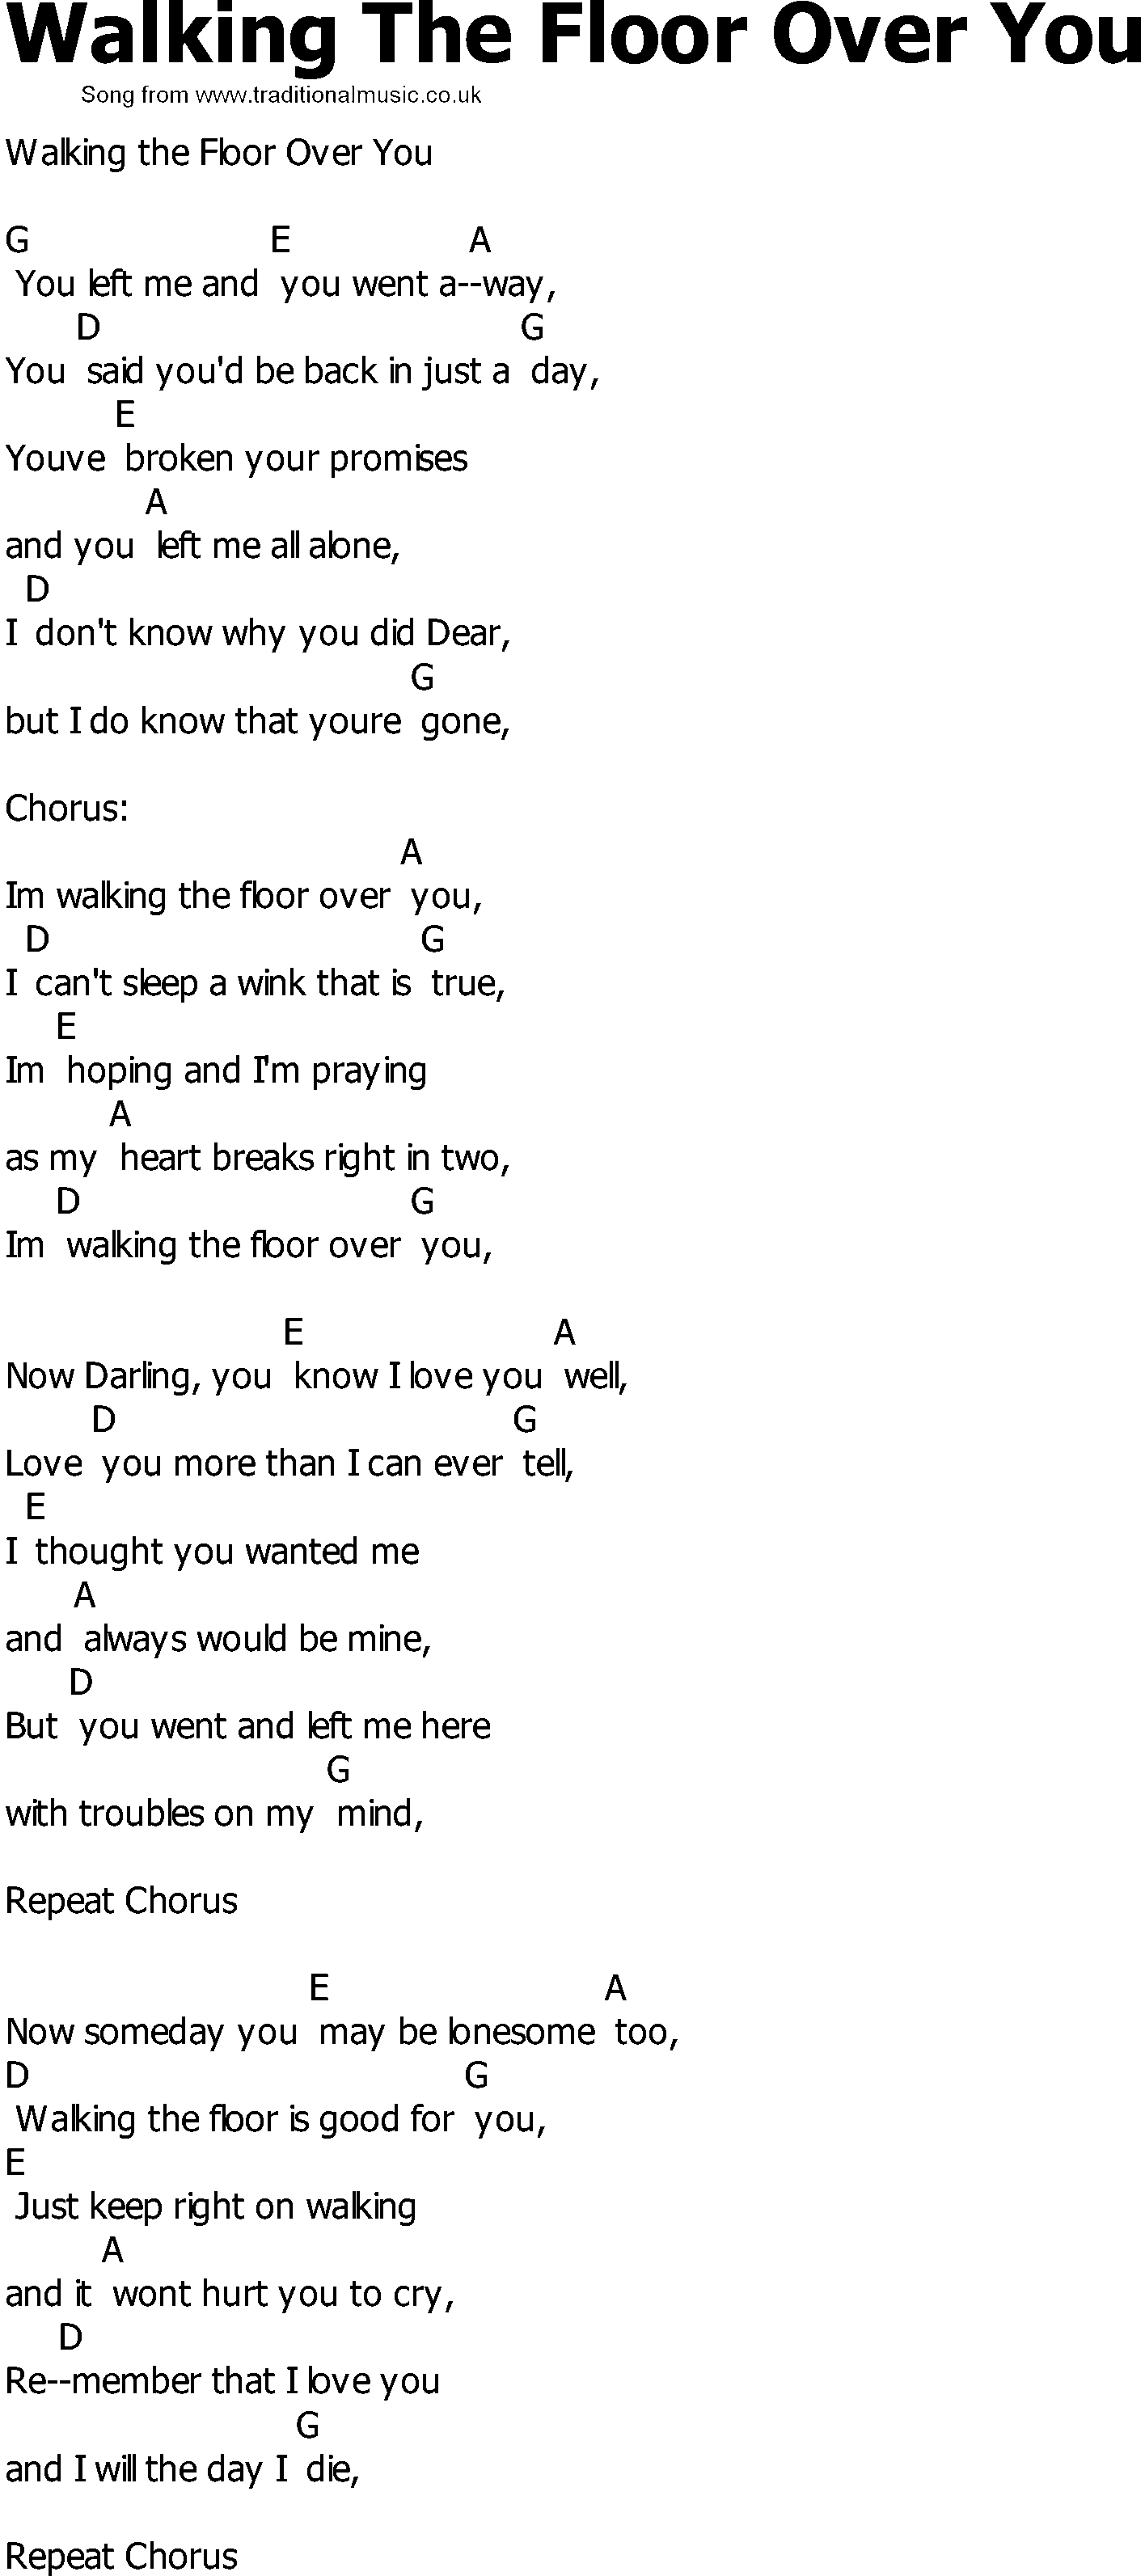 Old Country Song Lyrics With Chords   Walking The Floor Over You